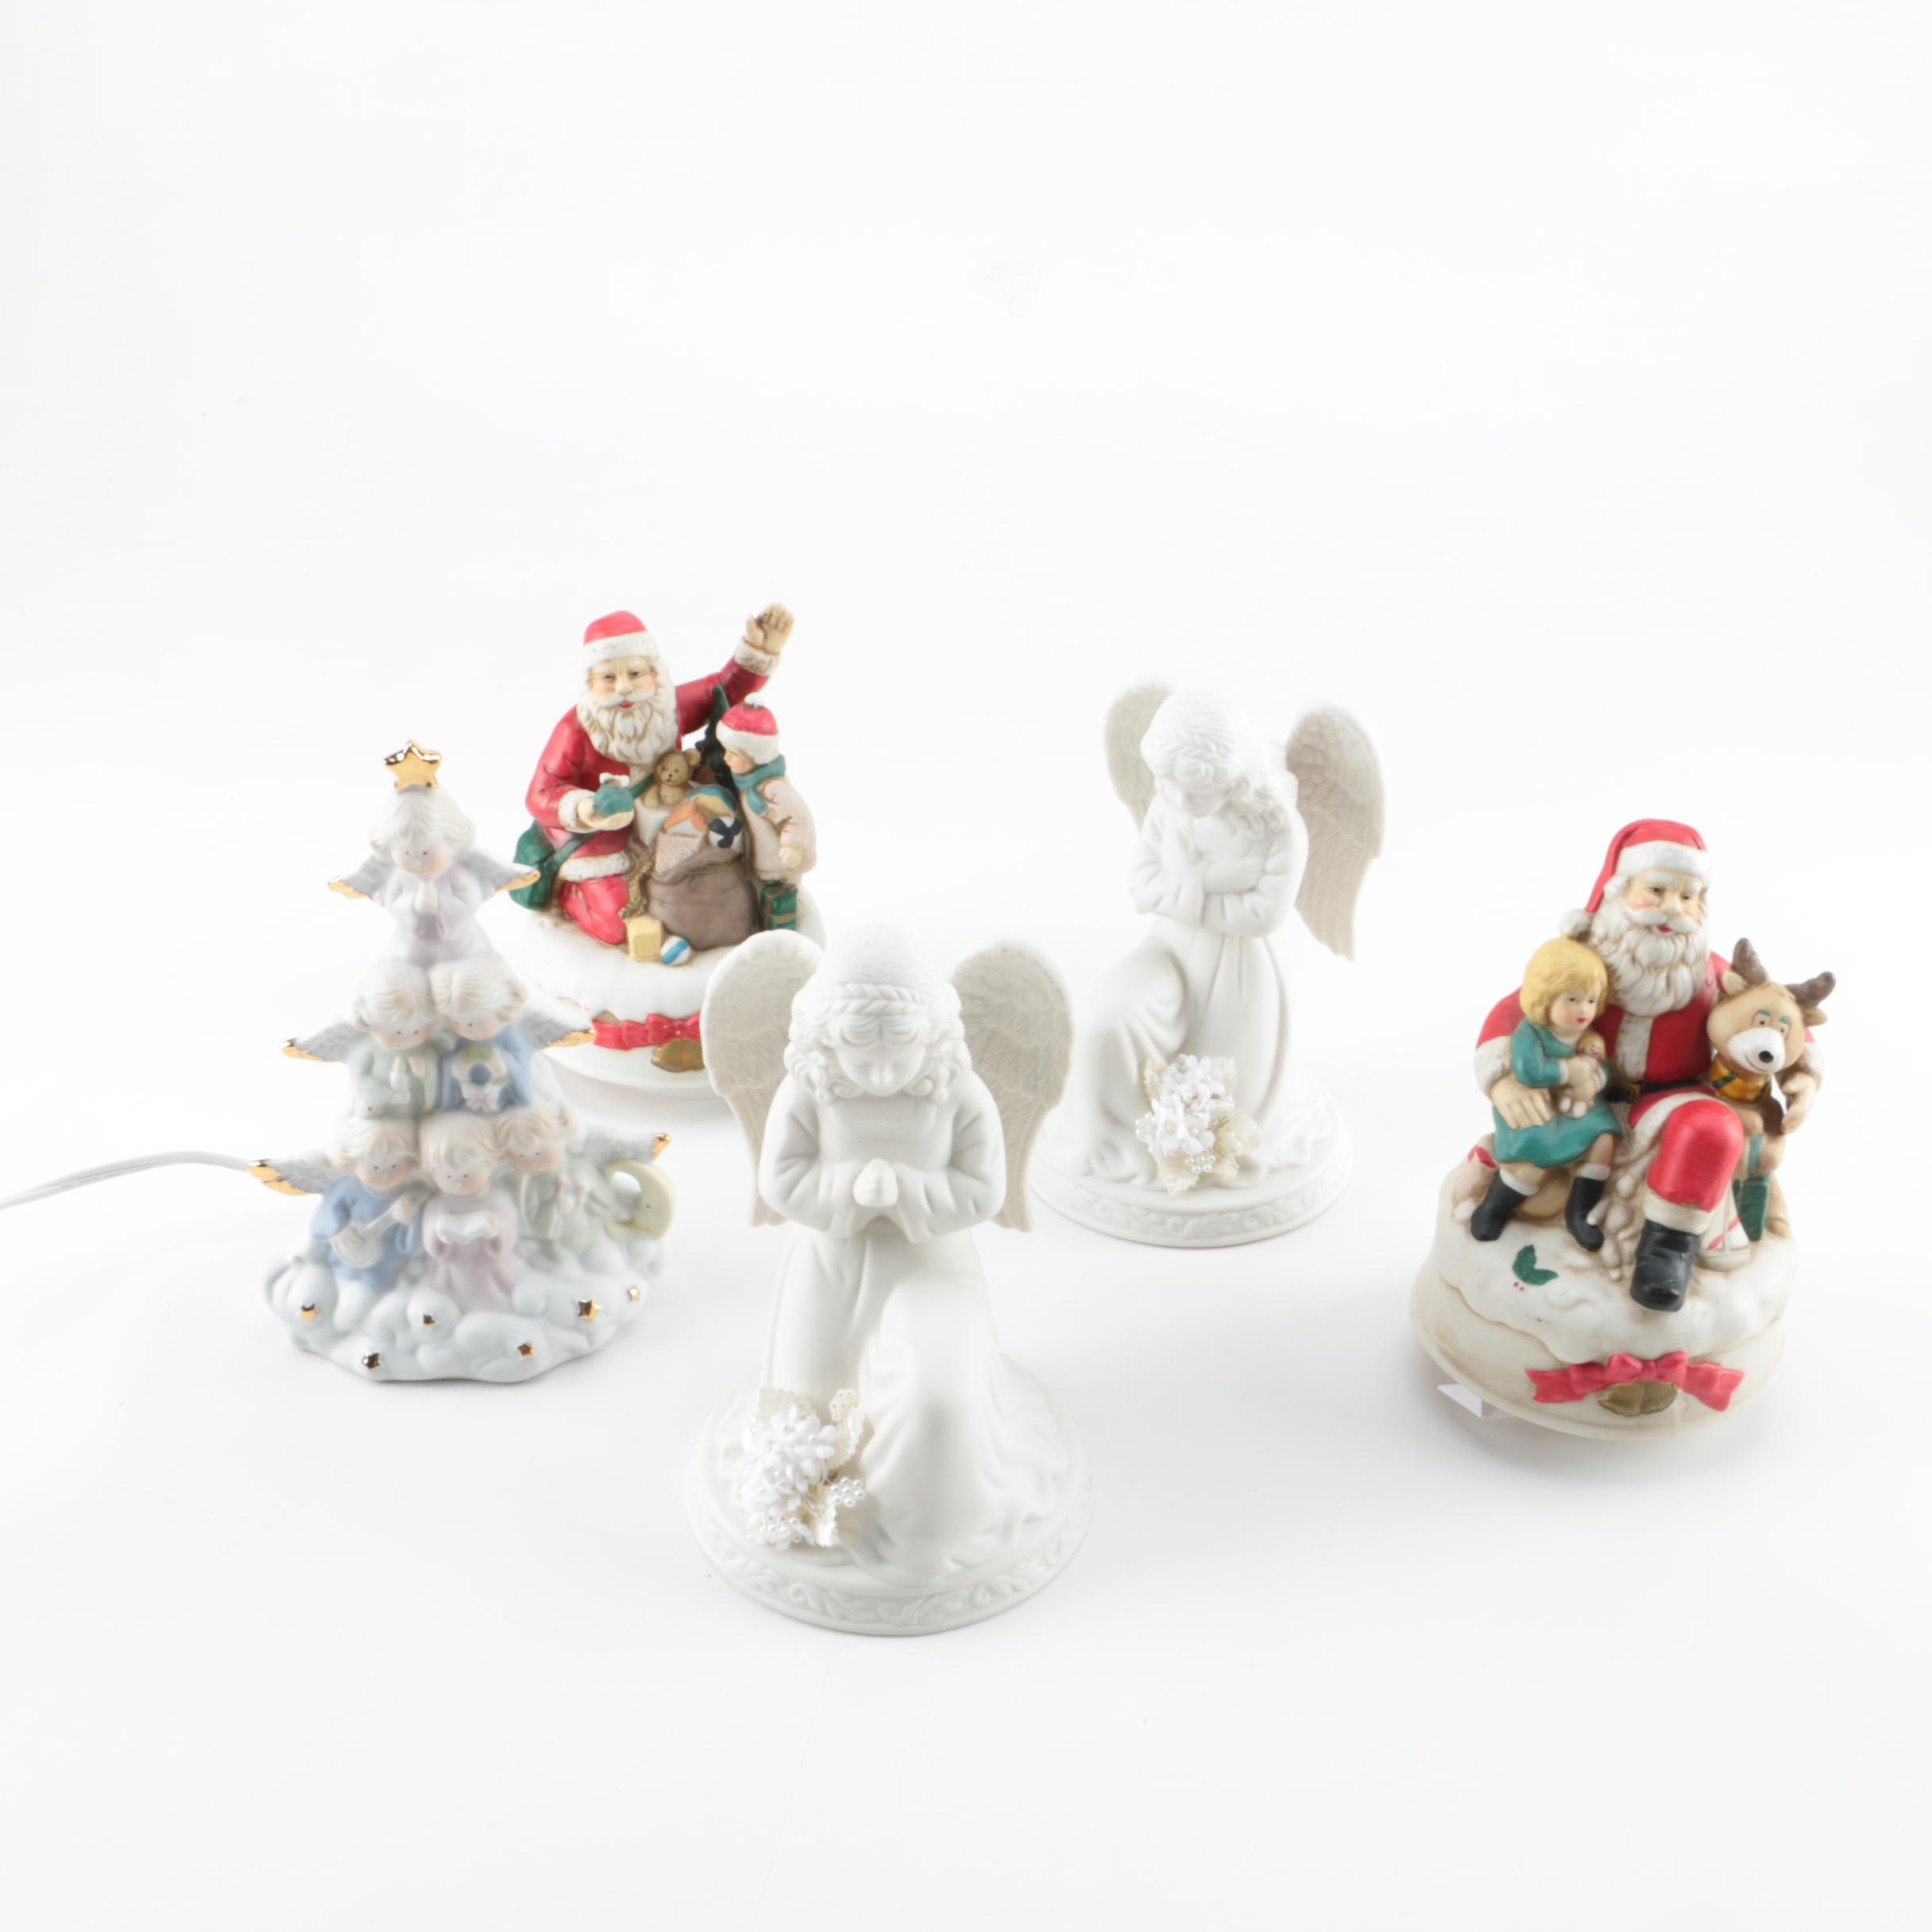 Ceramic Holiday Figurines